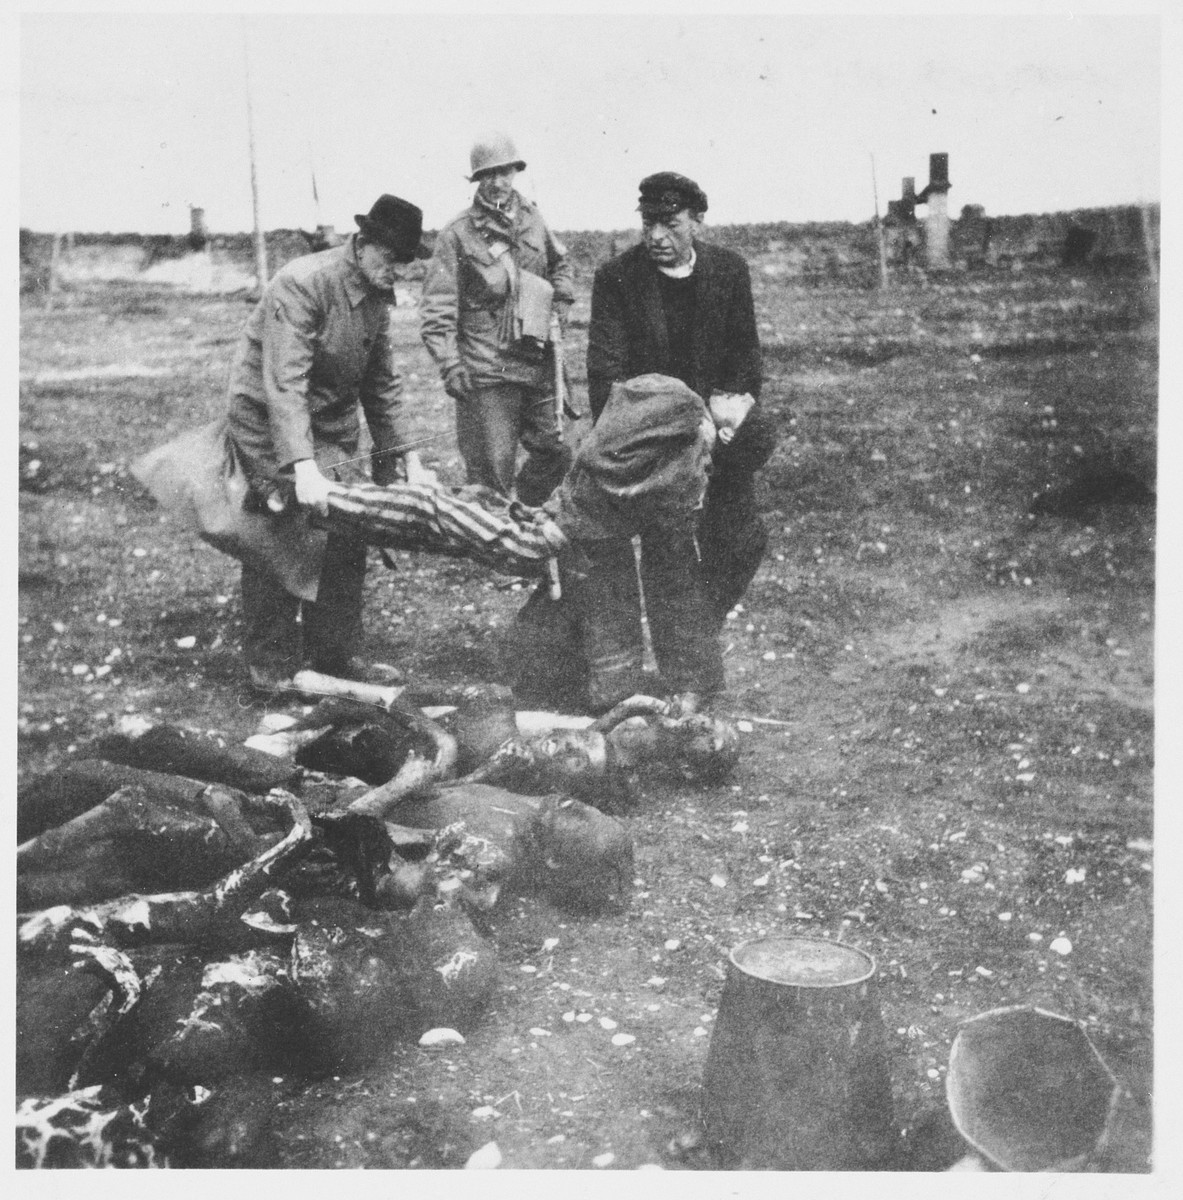 An American soldier supervisors two German civilians who have been forced to prepare corpses for burial at the newly liberated Buchenwald concentration camp.